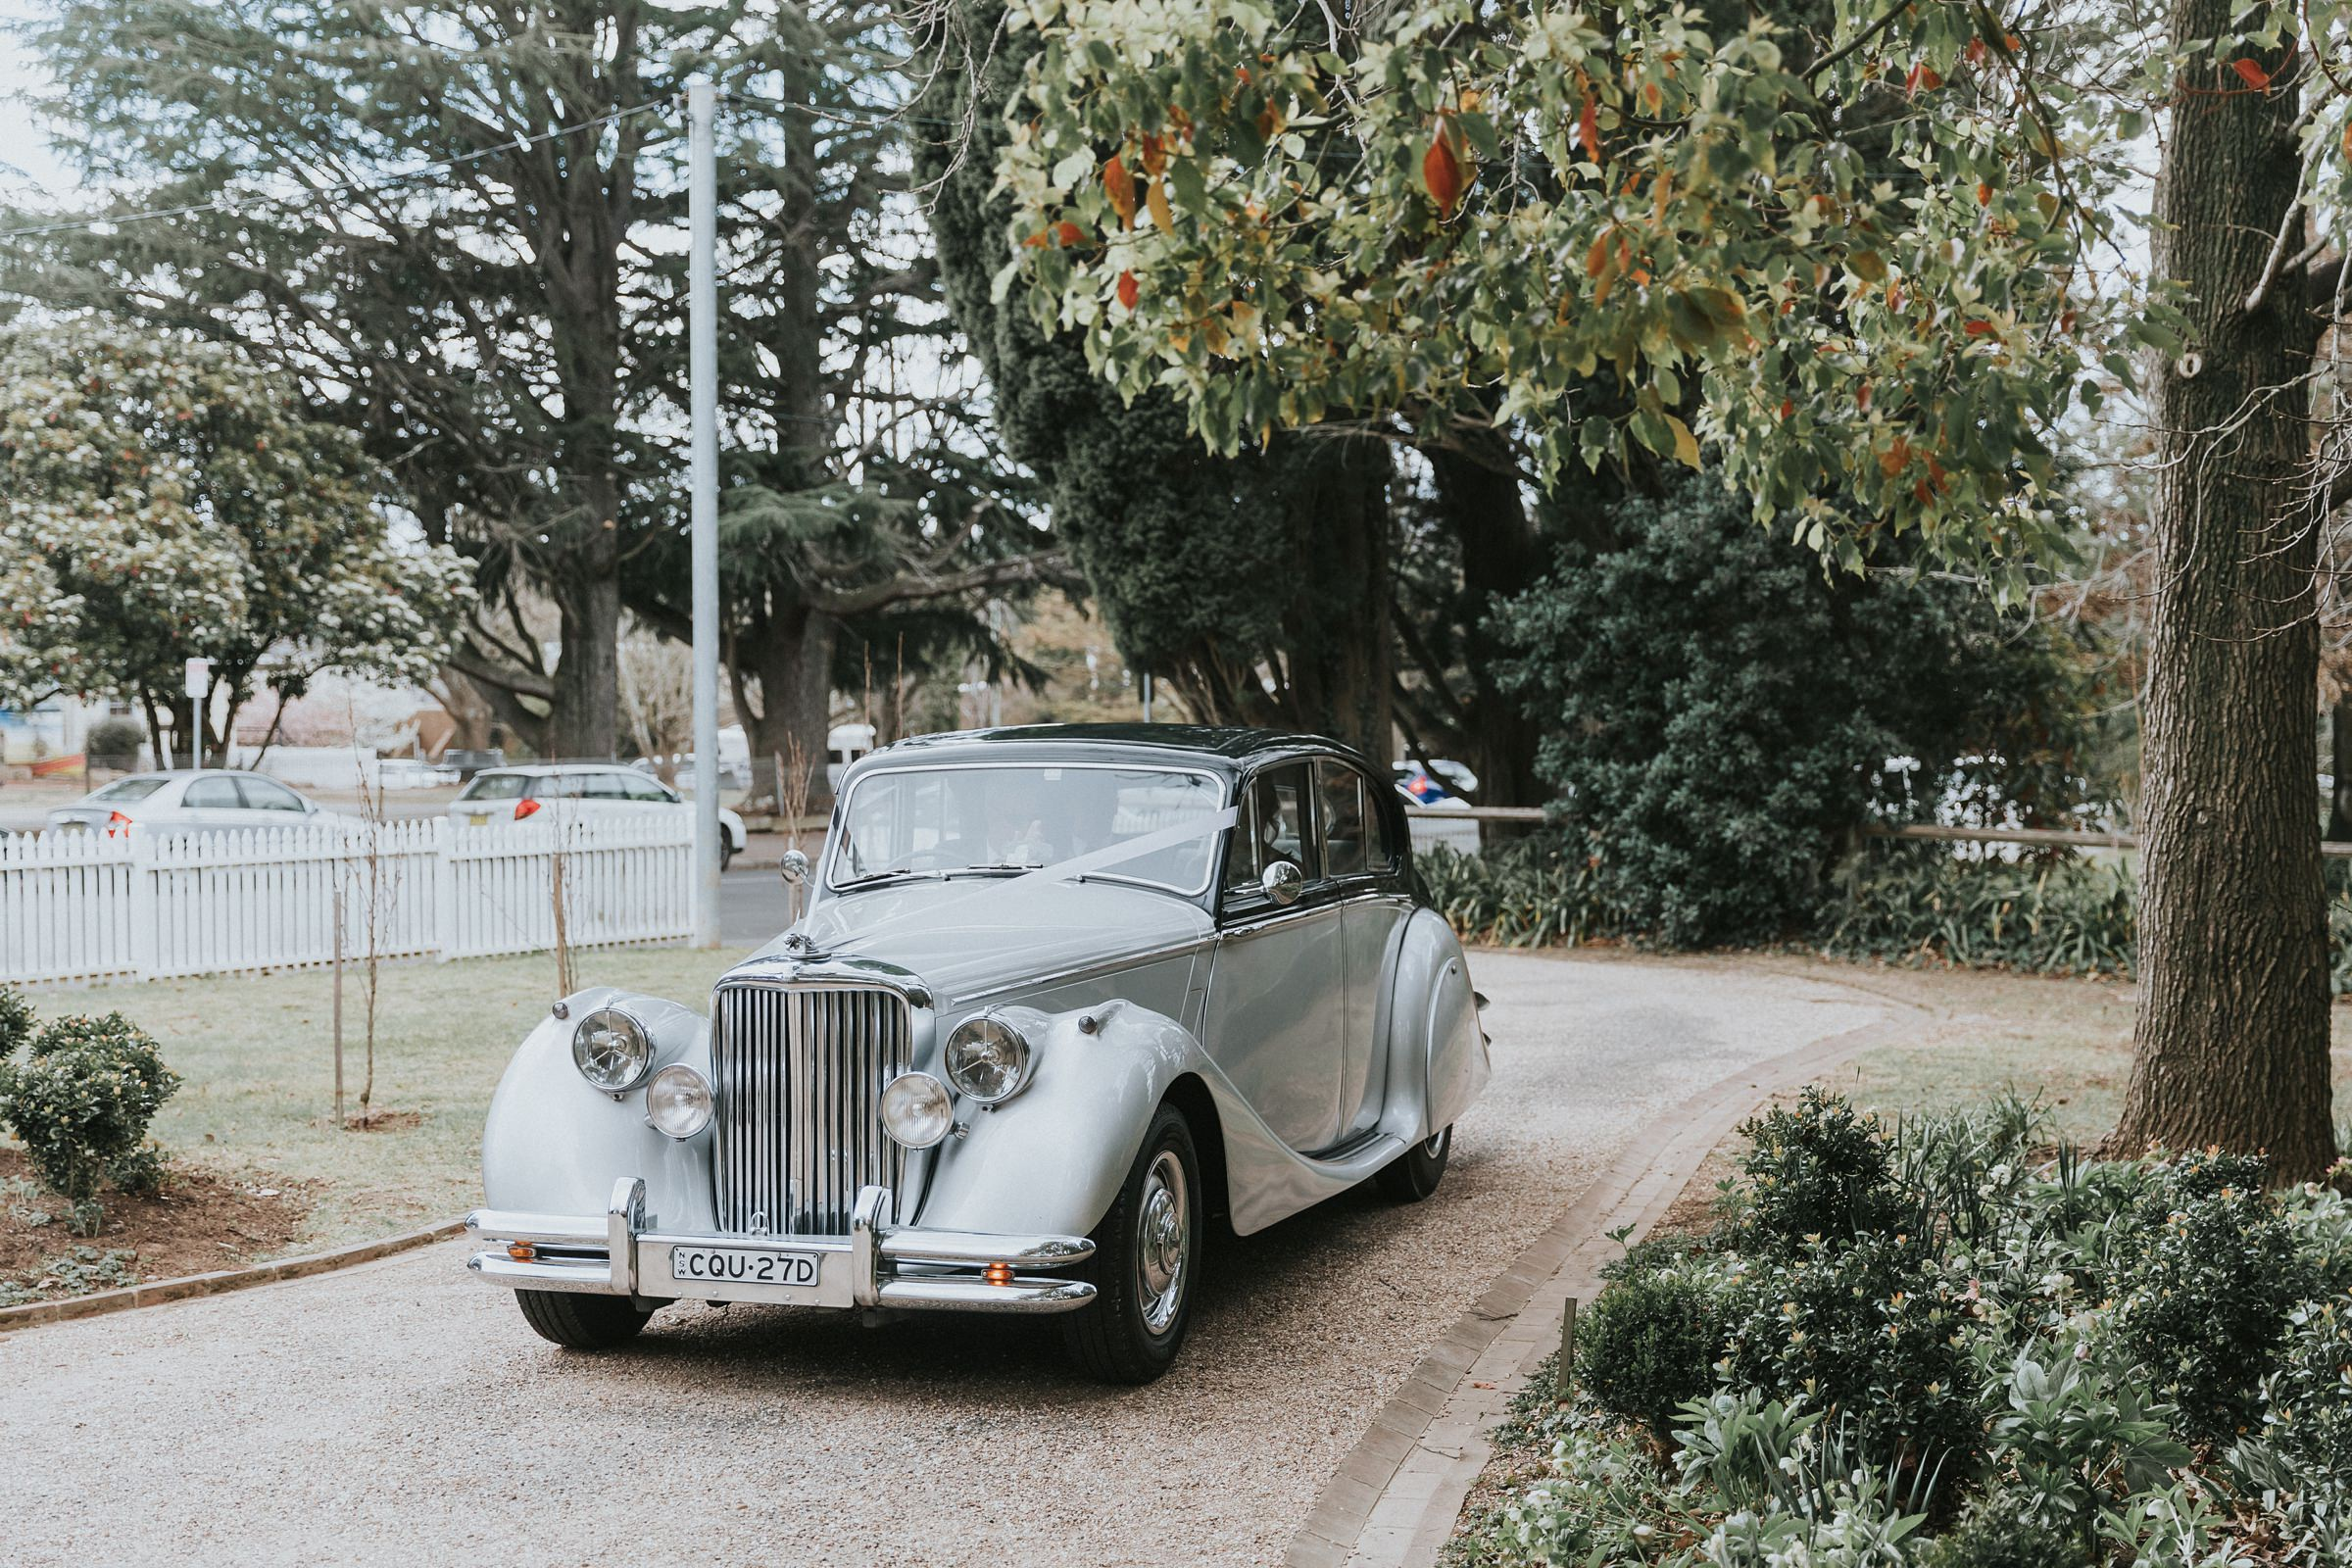 vintage rolls royce arrives at st jude's anglican church